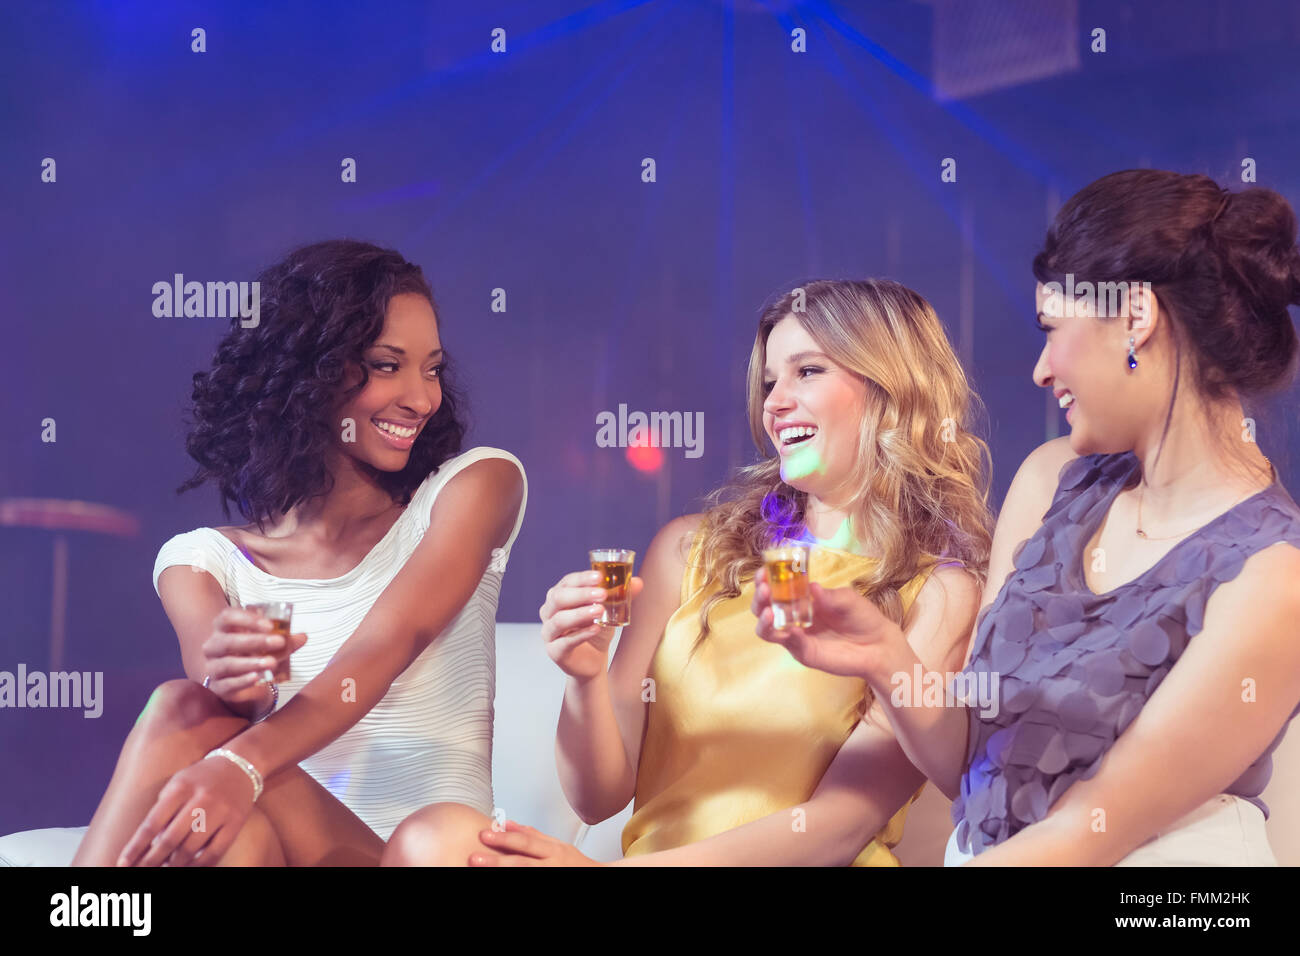 Pretty girls celebrating - Stock Image